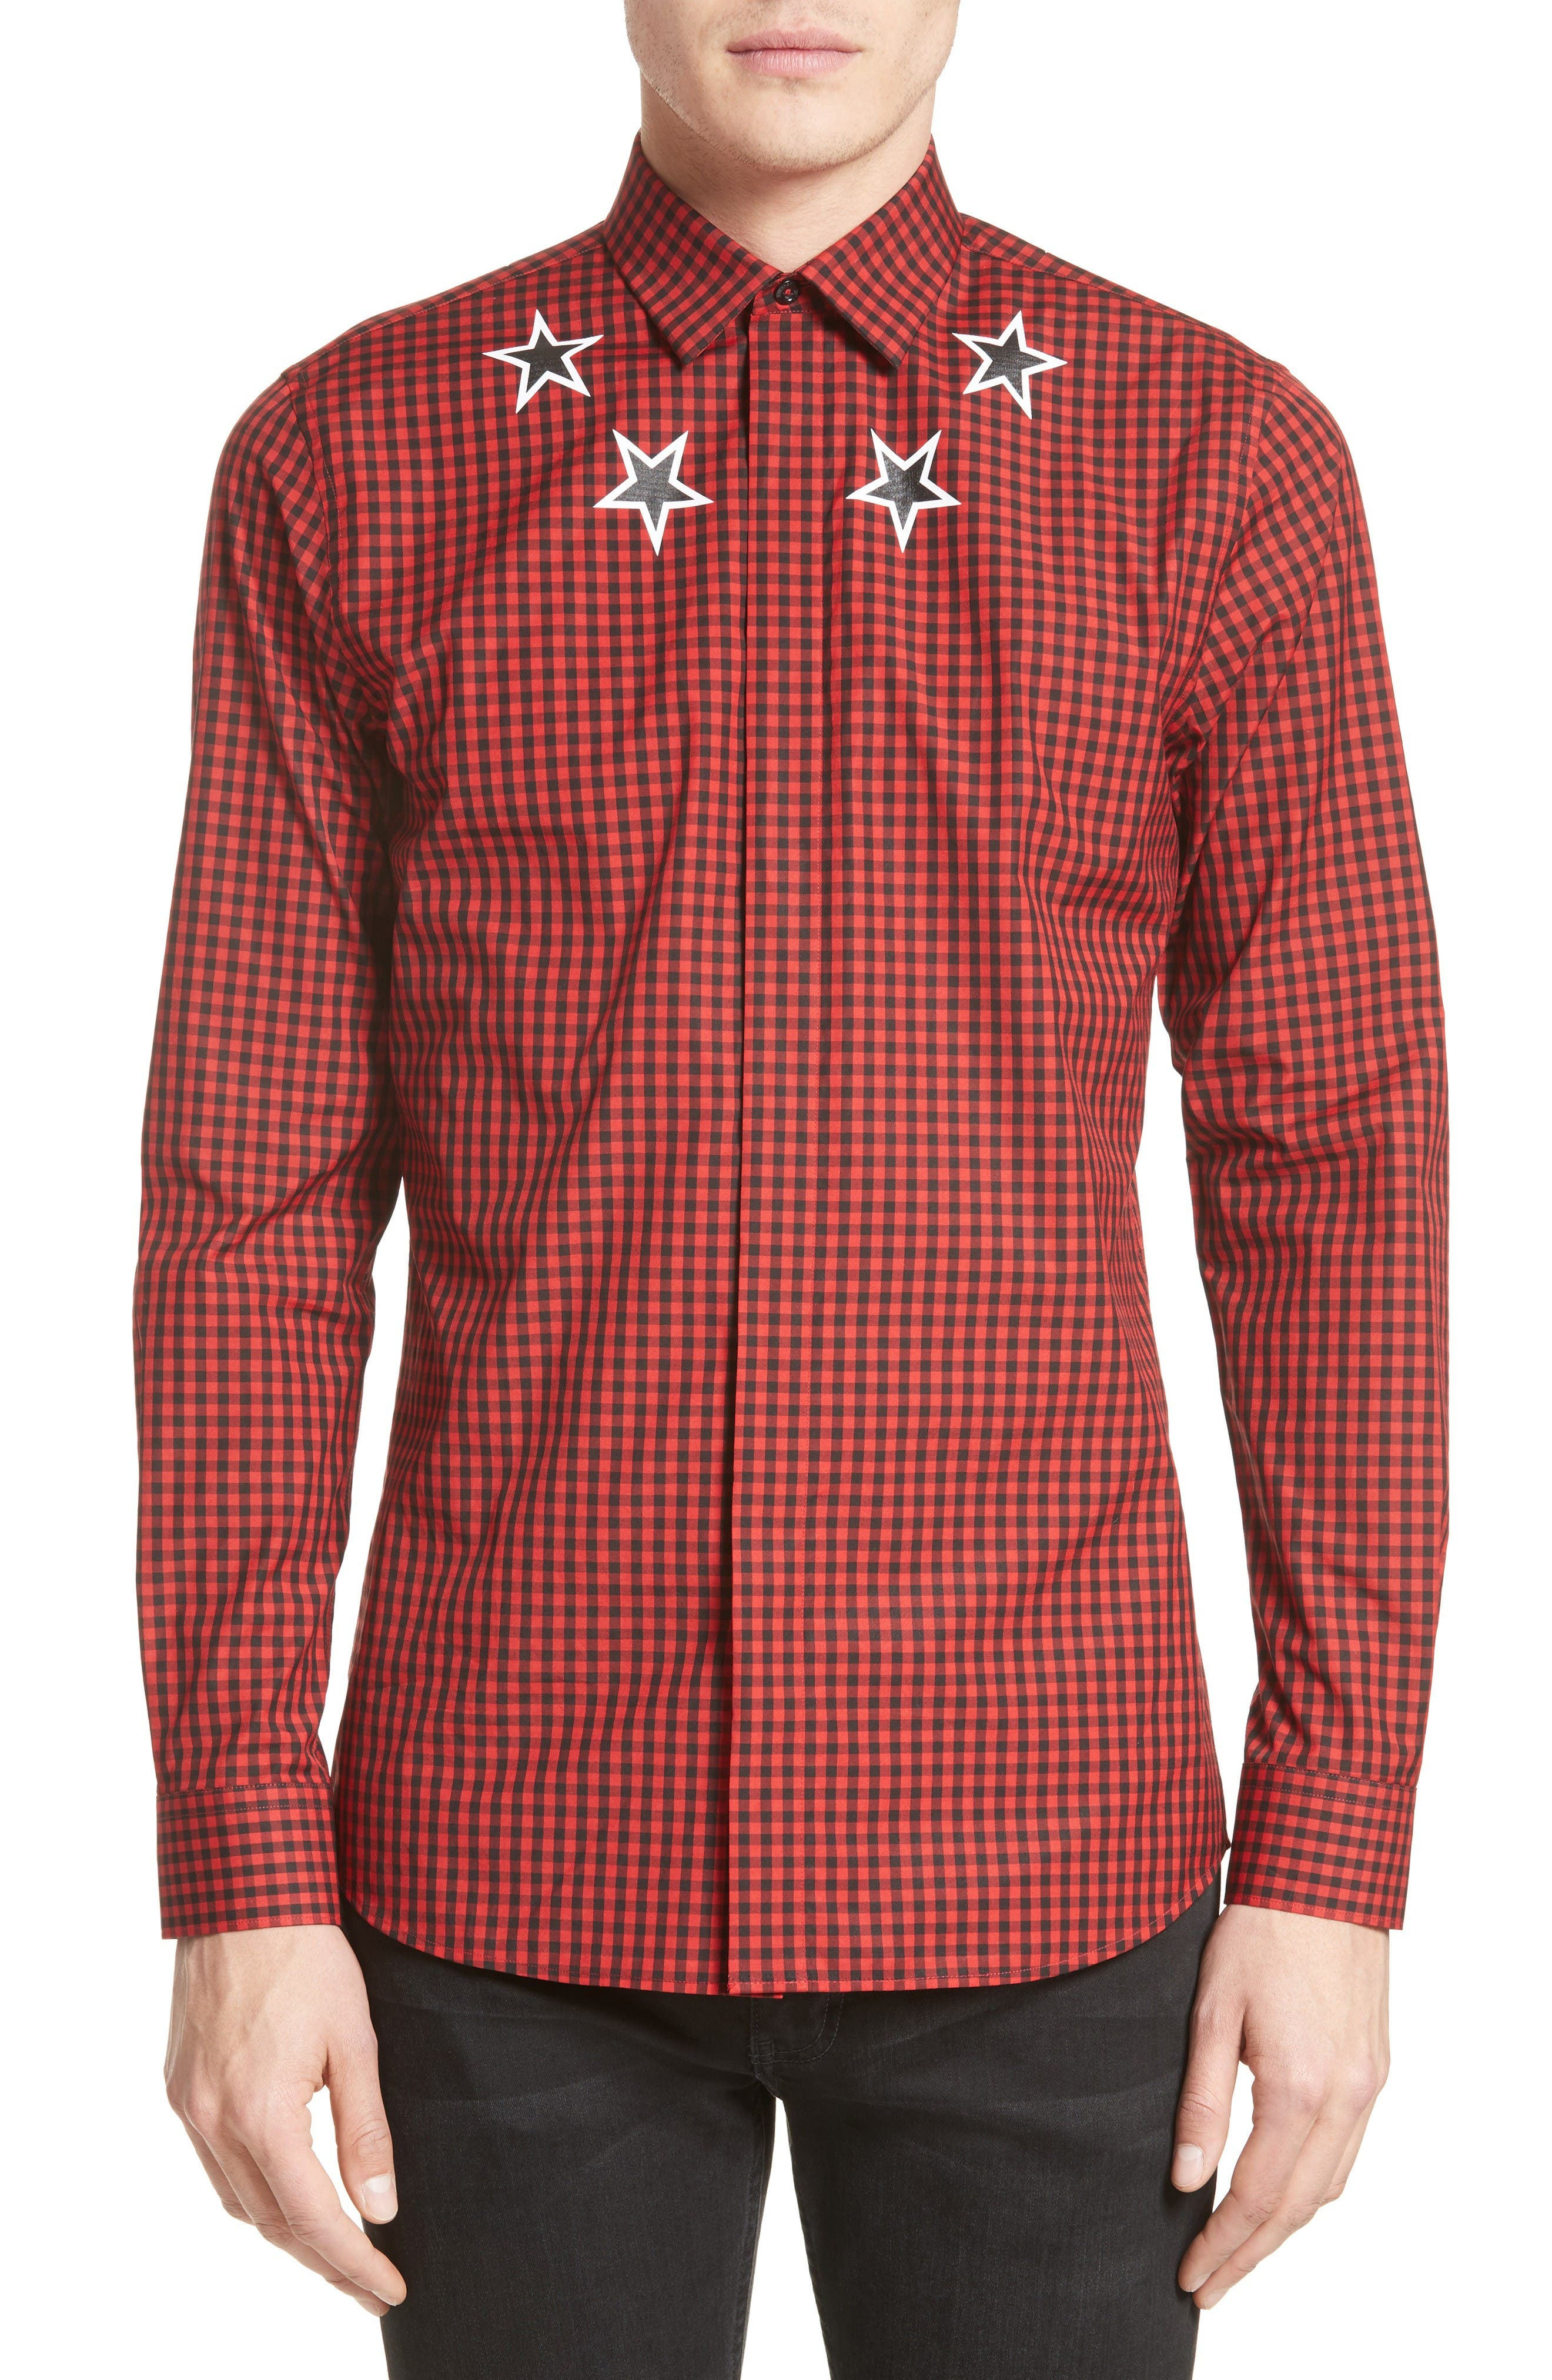 Givenchy Extra Trim Fit Star Gingham Sport Shirt